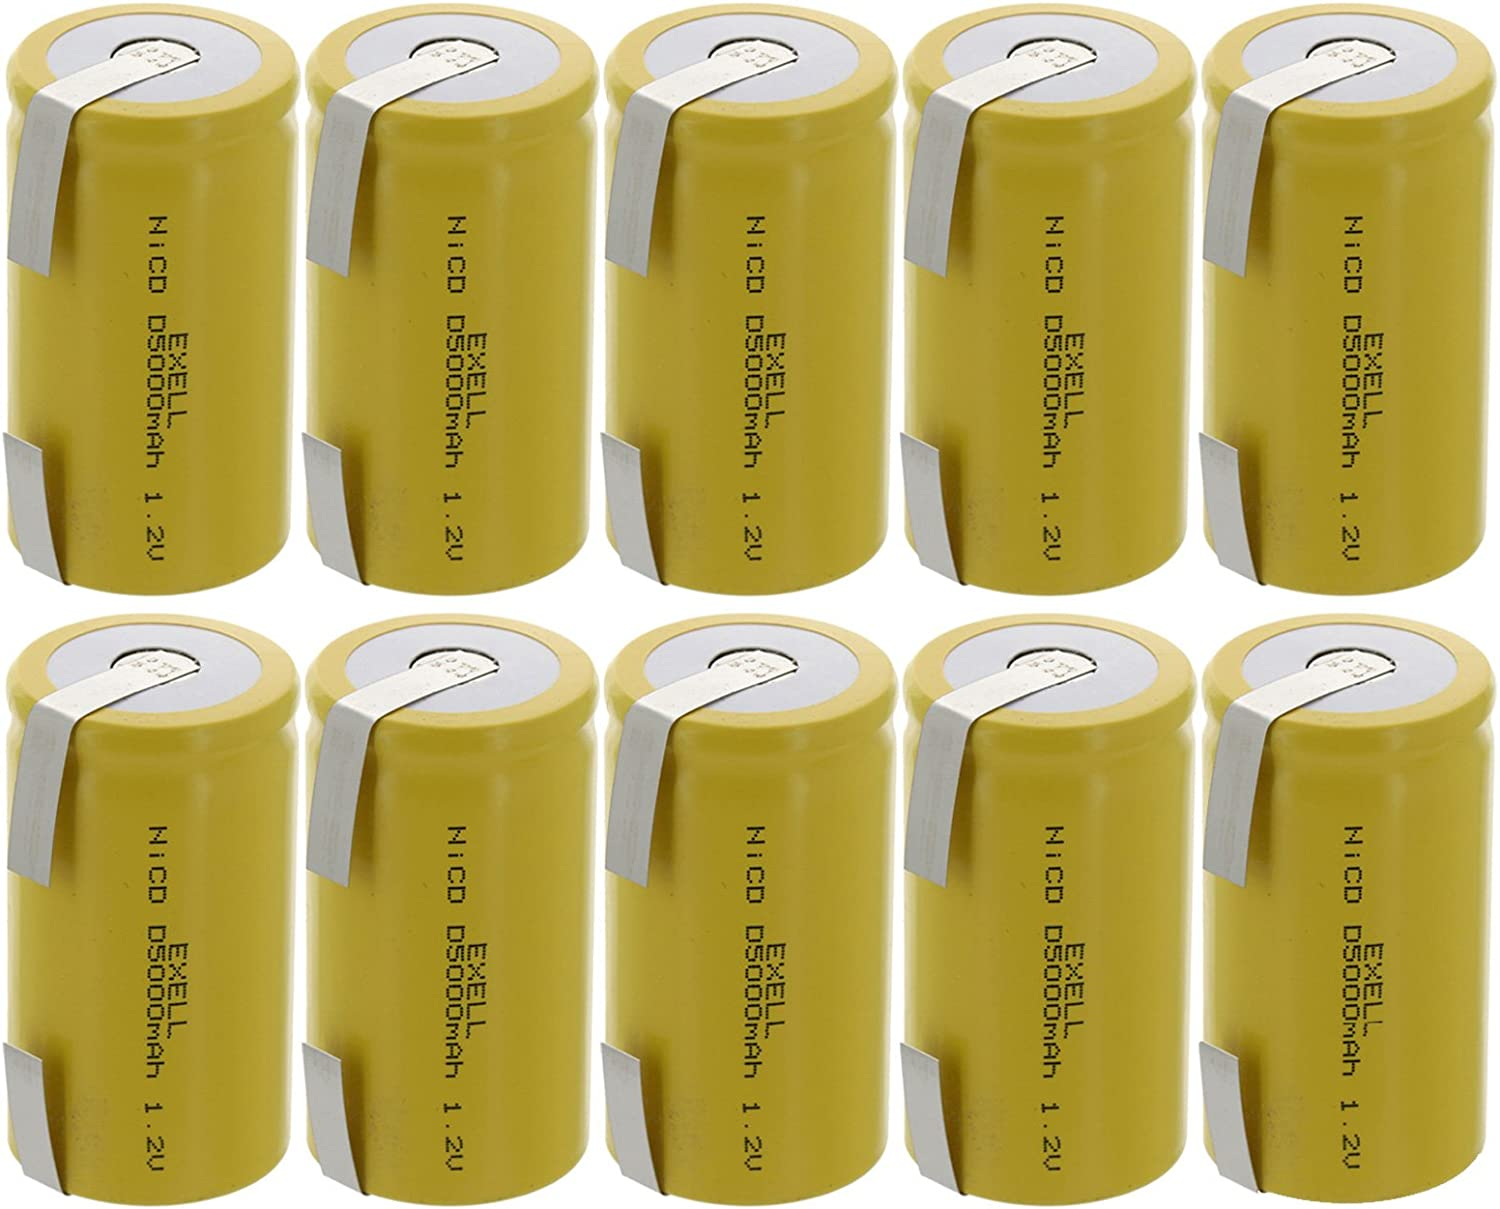 10X Exell D Size 1.2V 5000Mah Nicd Rechargeable Batteries mit Tabs für Meters, Radios, Hybrid Automobiles, hoch Power Static Applications (Telecoms, Ups und Smart Grid), Radio Controlled Devices